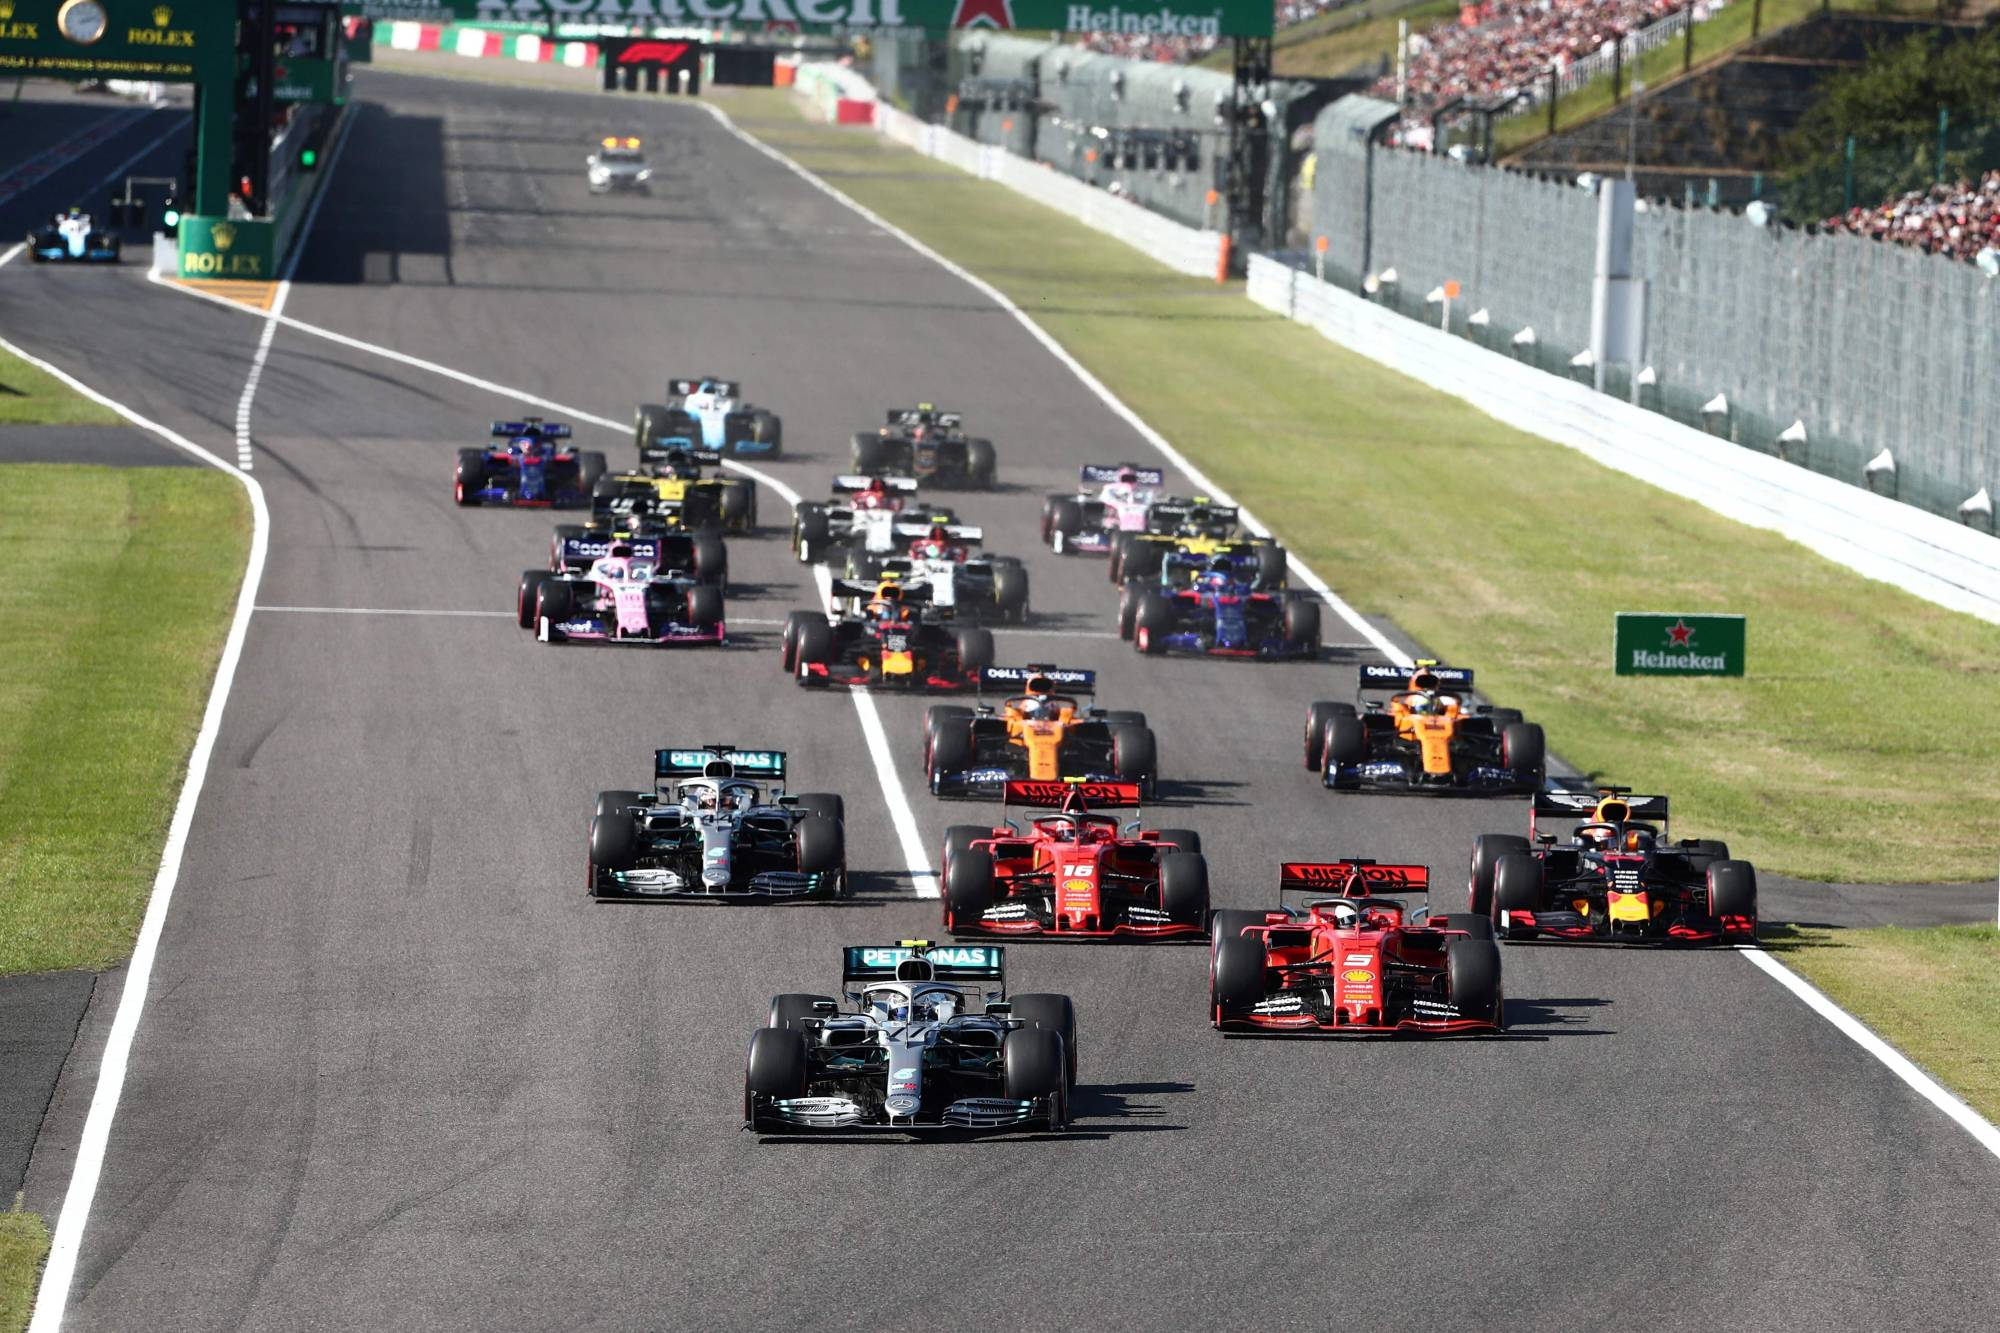 Formula One uses fuel that is equivalent to ordinary gasoline available to the public. It requires engines to use fuel that has 10% sustainable content, and the sport's governing body, the FIA, has committed to net-zero carbon by 2030.   AFP-JIJI